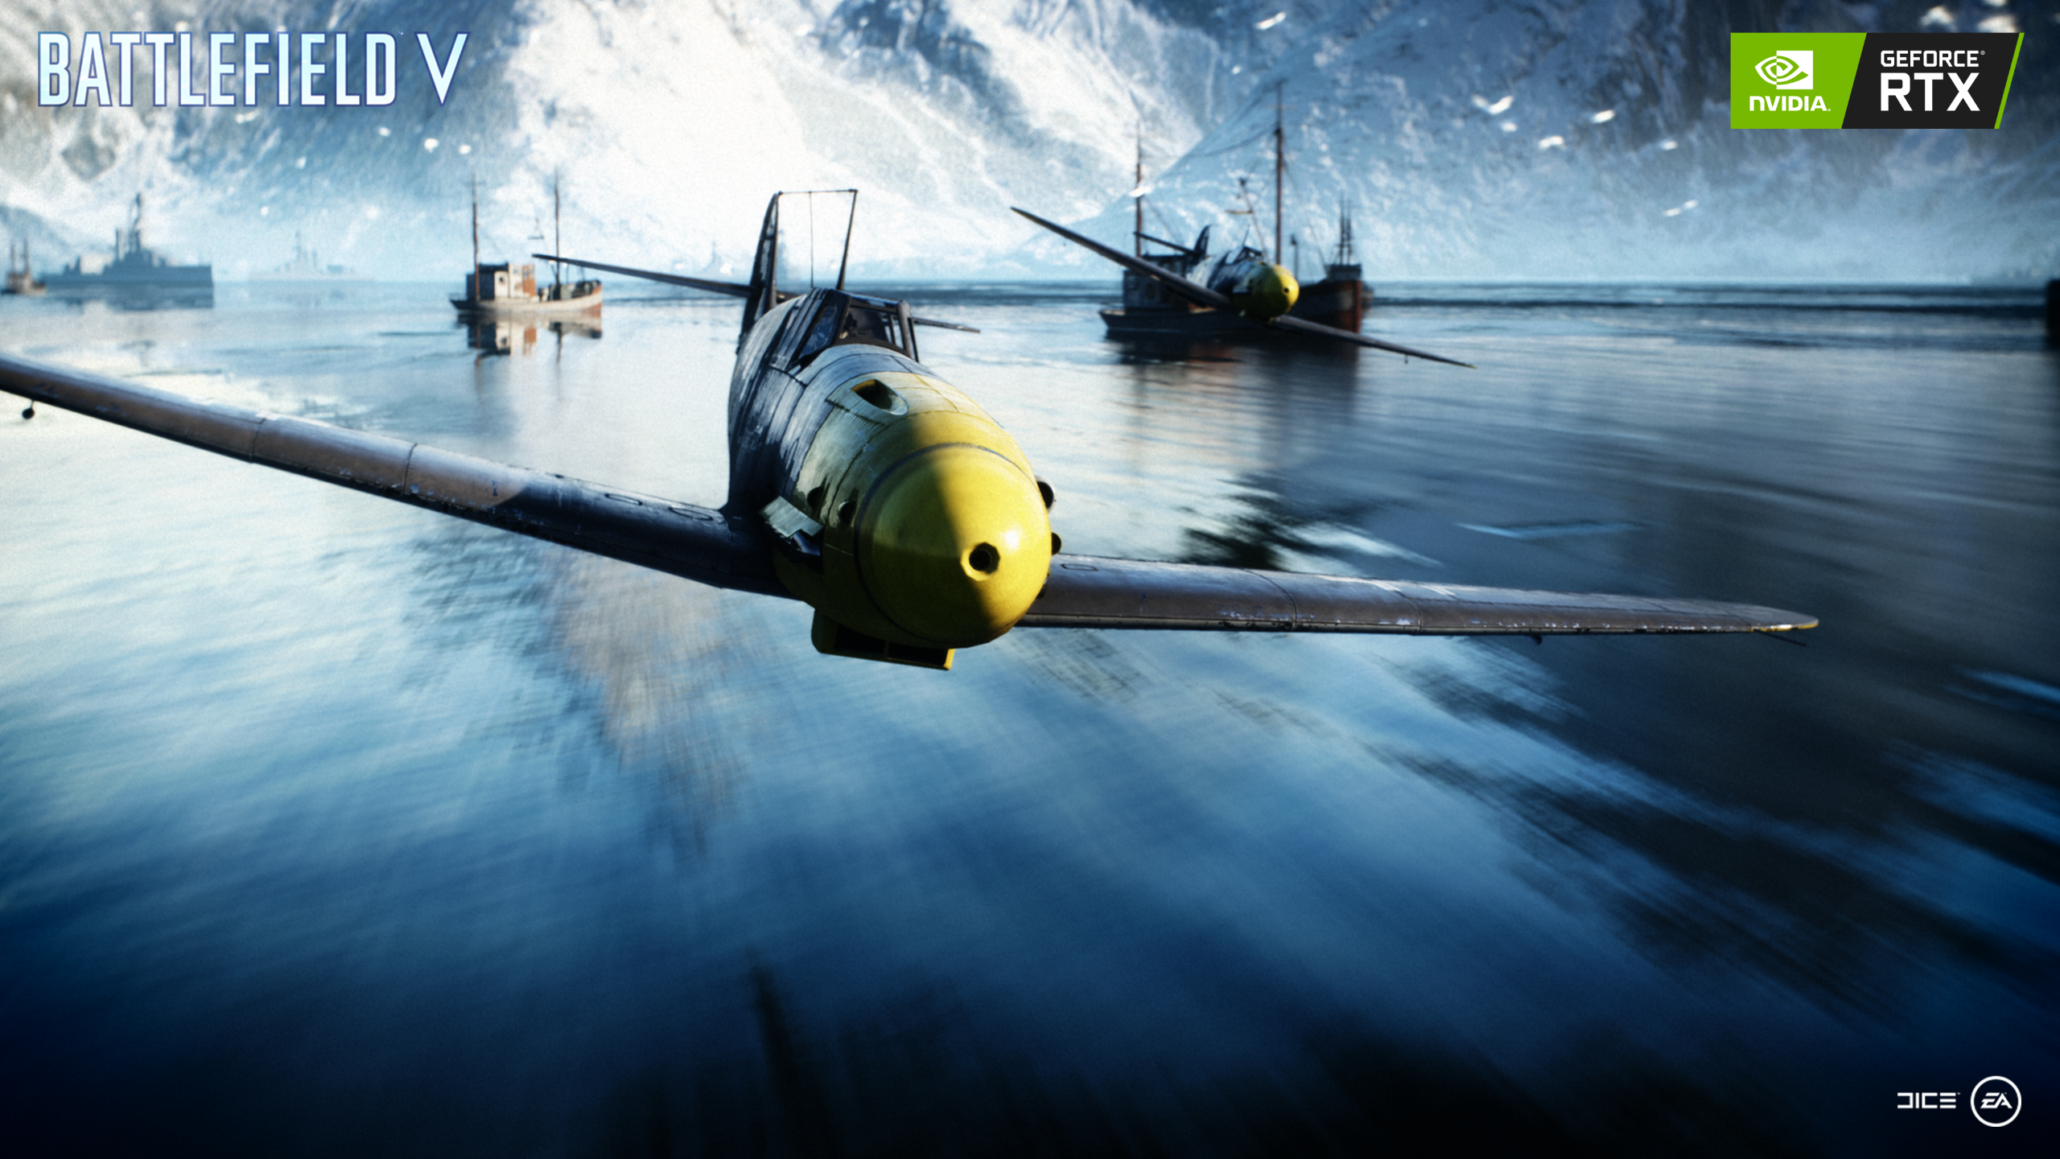 NVIDIA GeForce Game Ready 399 07 Drivers For Battlefield V